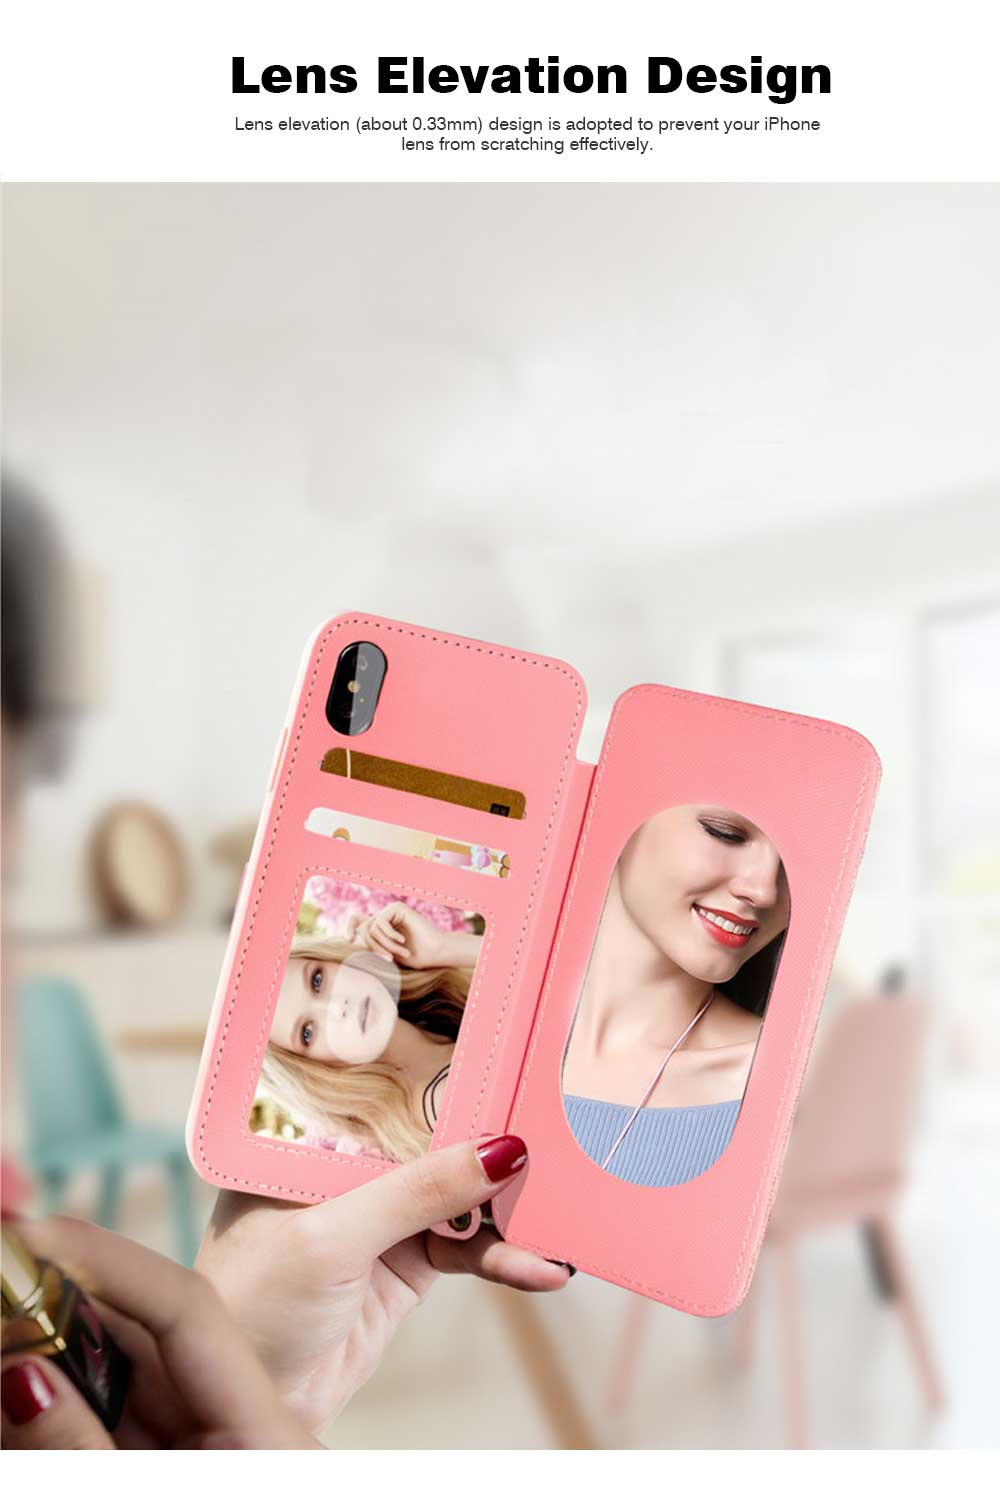 Matte Texture Phone Case with Inside Mirror for iPhone 6,6S,6P,6SP,7,8,7P,8P,X,XS,XS Max,XR Samsung Note 8,S8,S8 Plus, Built-in Mirror Folio Phone Cover 5